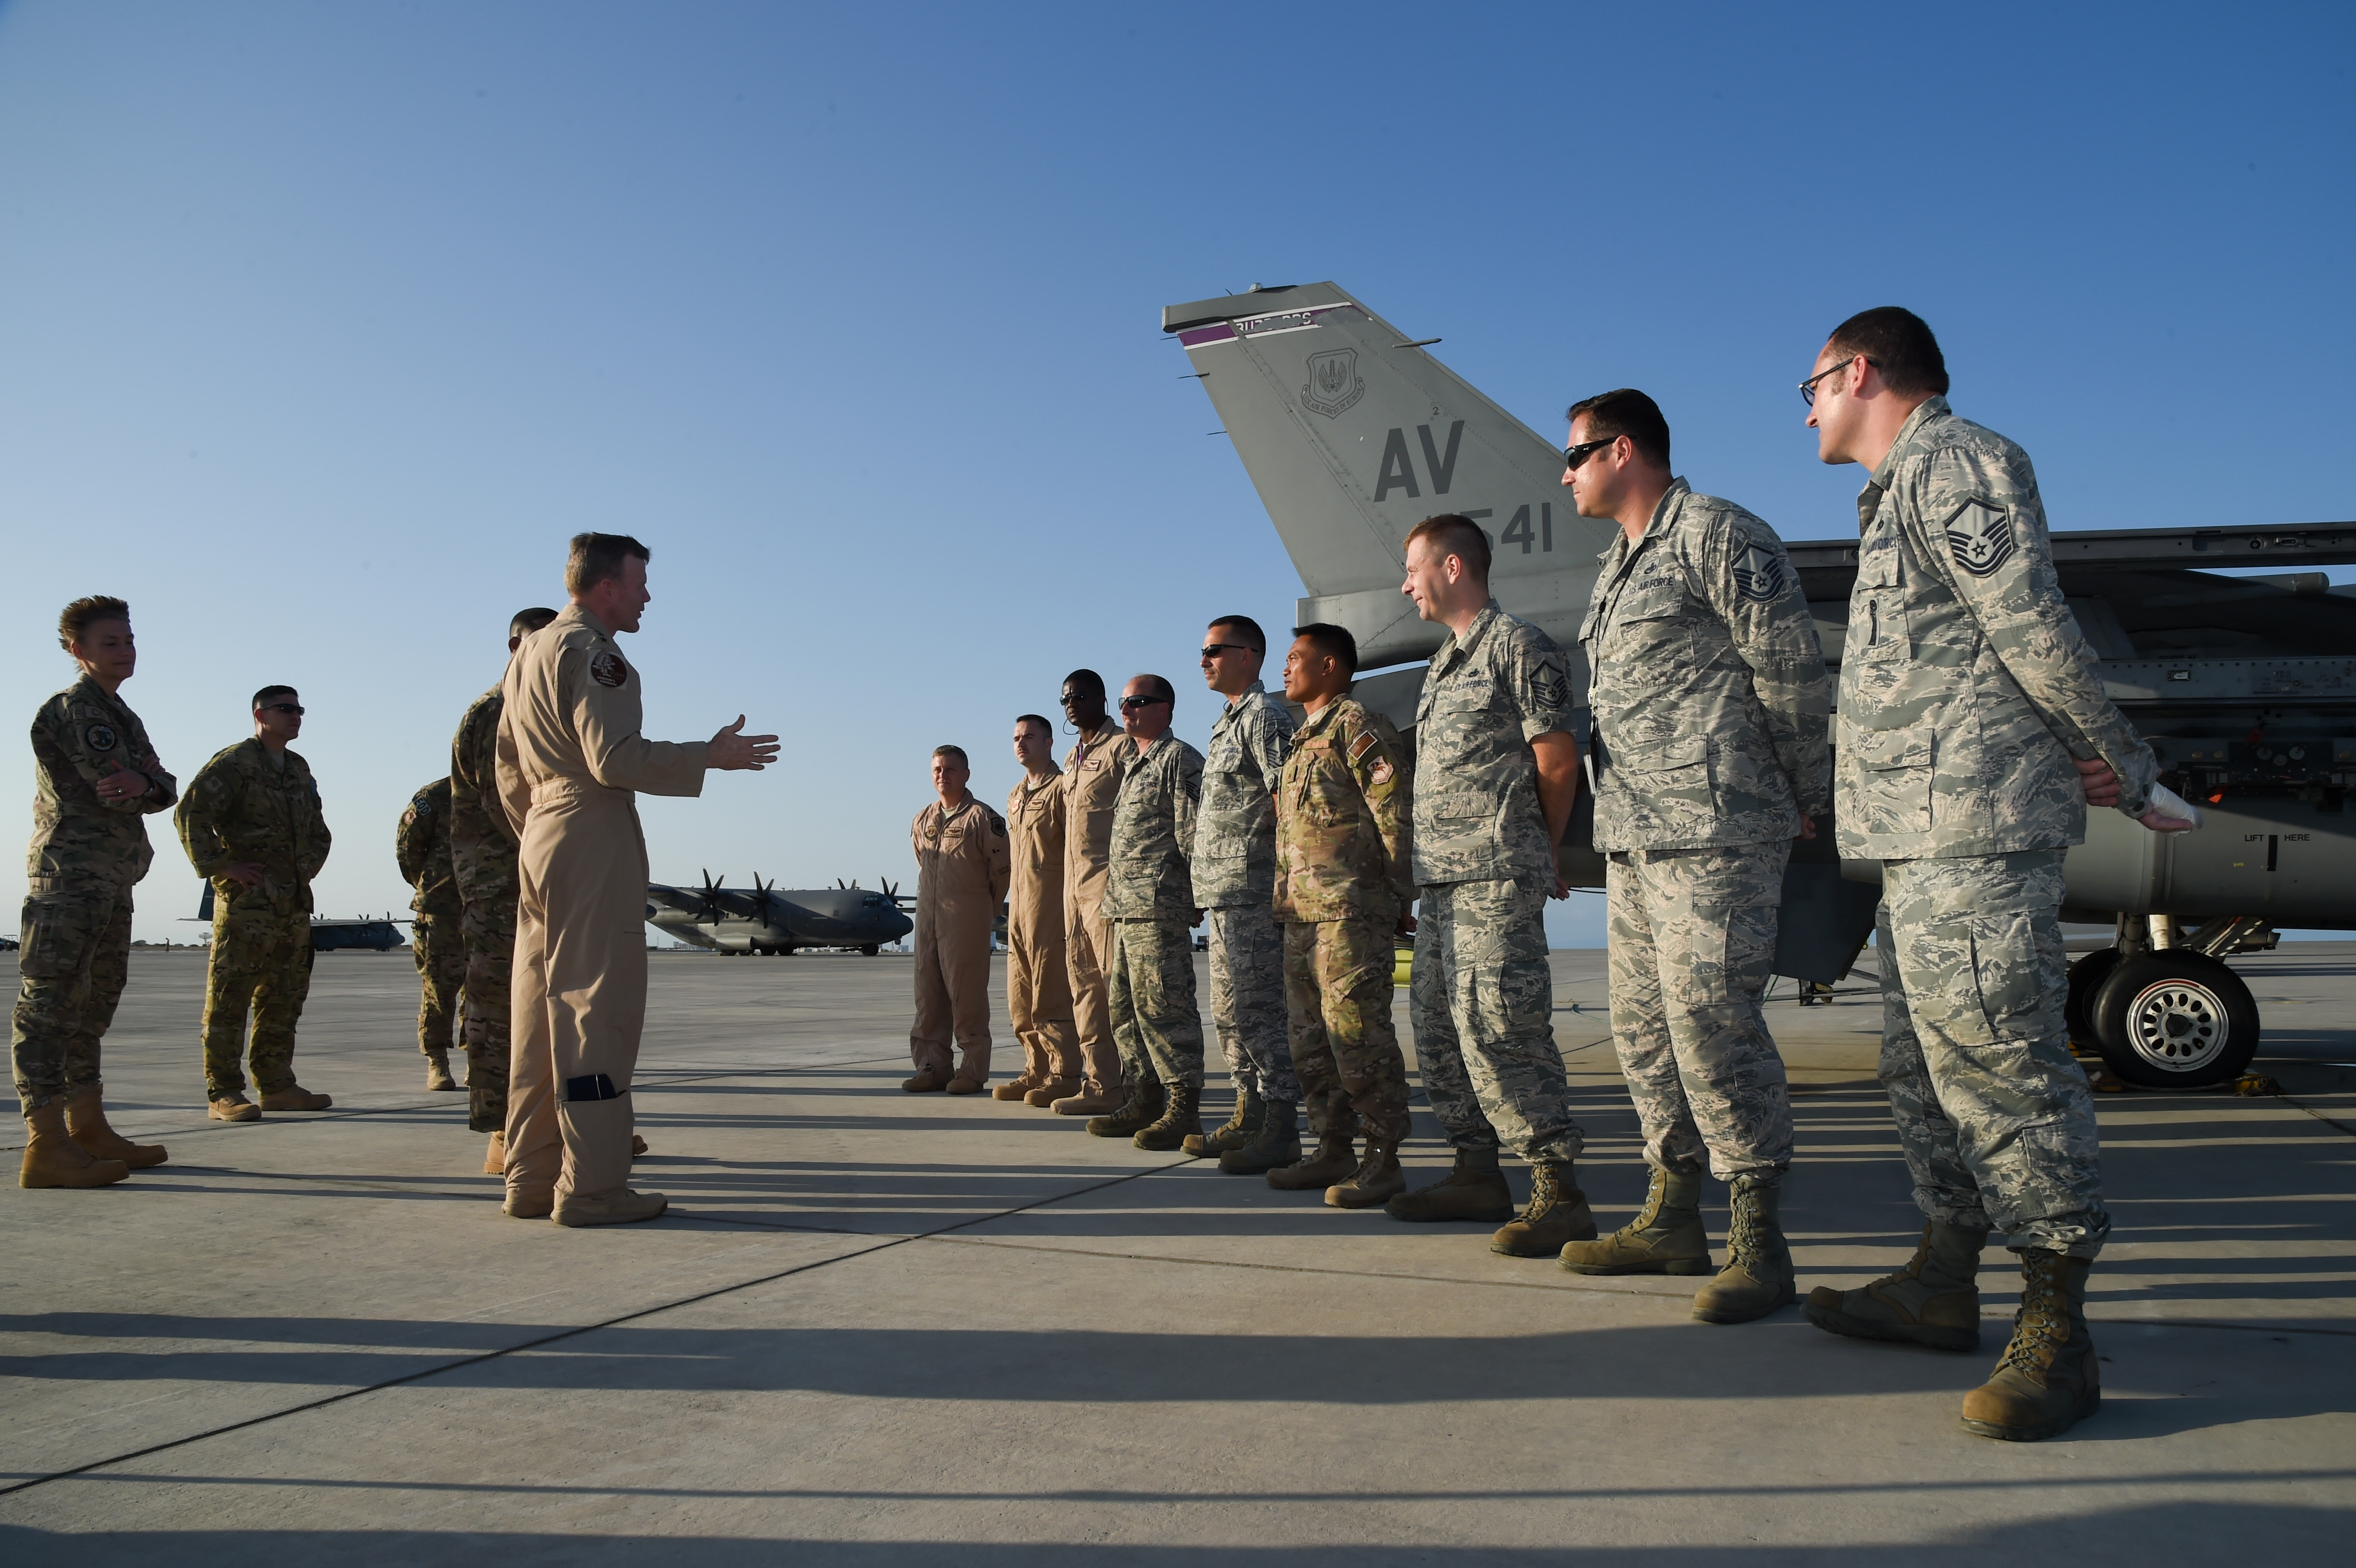 U.S. Air Force Gen. Tod Wolters, commander of U.S. Air Forces in Europe and Air Forces Africa, greets members of the 510th Expeditionary Fighter Squadron at Camp Lemonnier, Djibouti, Feb. 1, 2017. Wolters visited with U.S. Air Force members in Djibouti to gain insight into their integrated missions, and the multiple roles of Airmen in the joint environment. The members assembled nearby their assigned aircraft, an F-16 Fighting Falcon from Aviano Air Base, Italy.